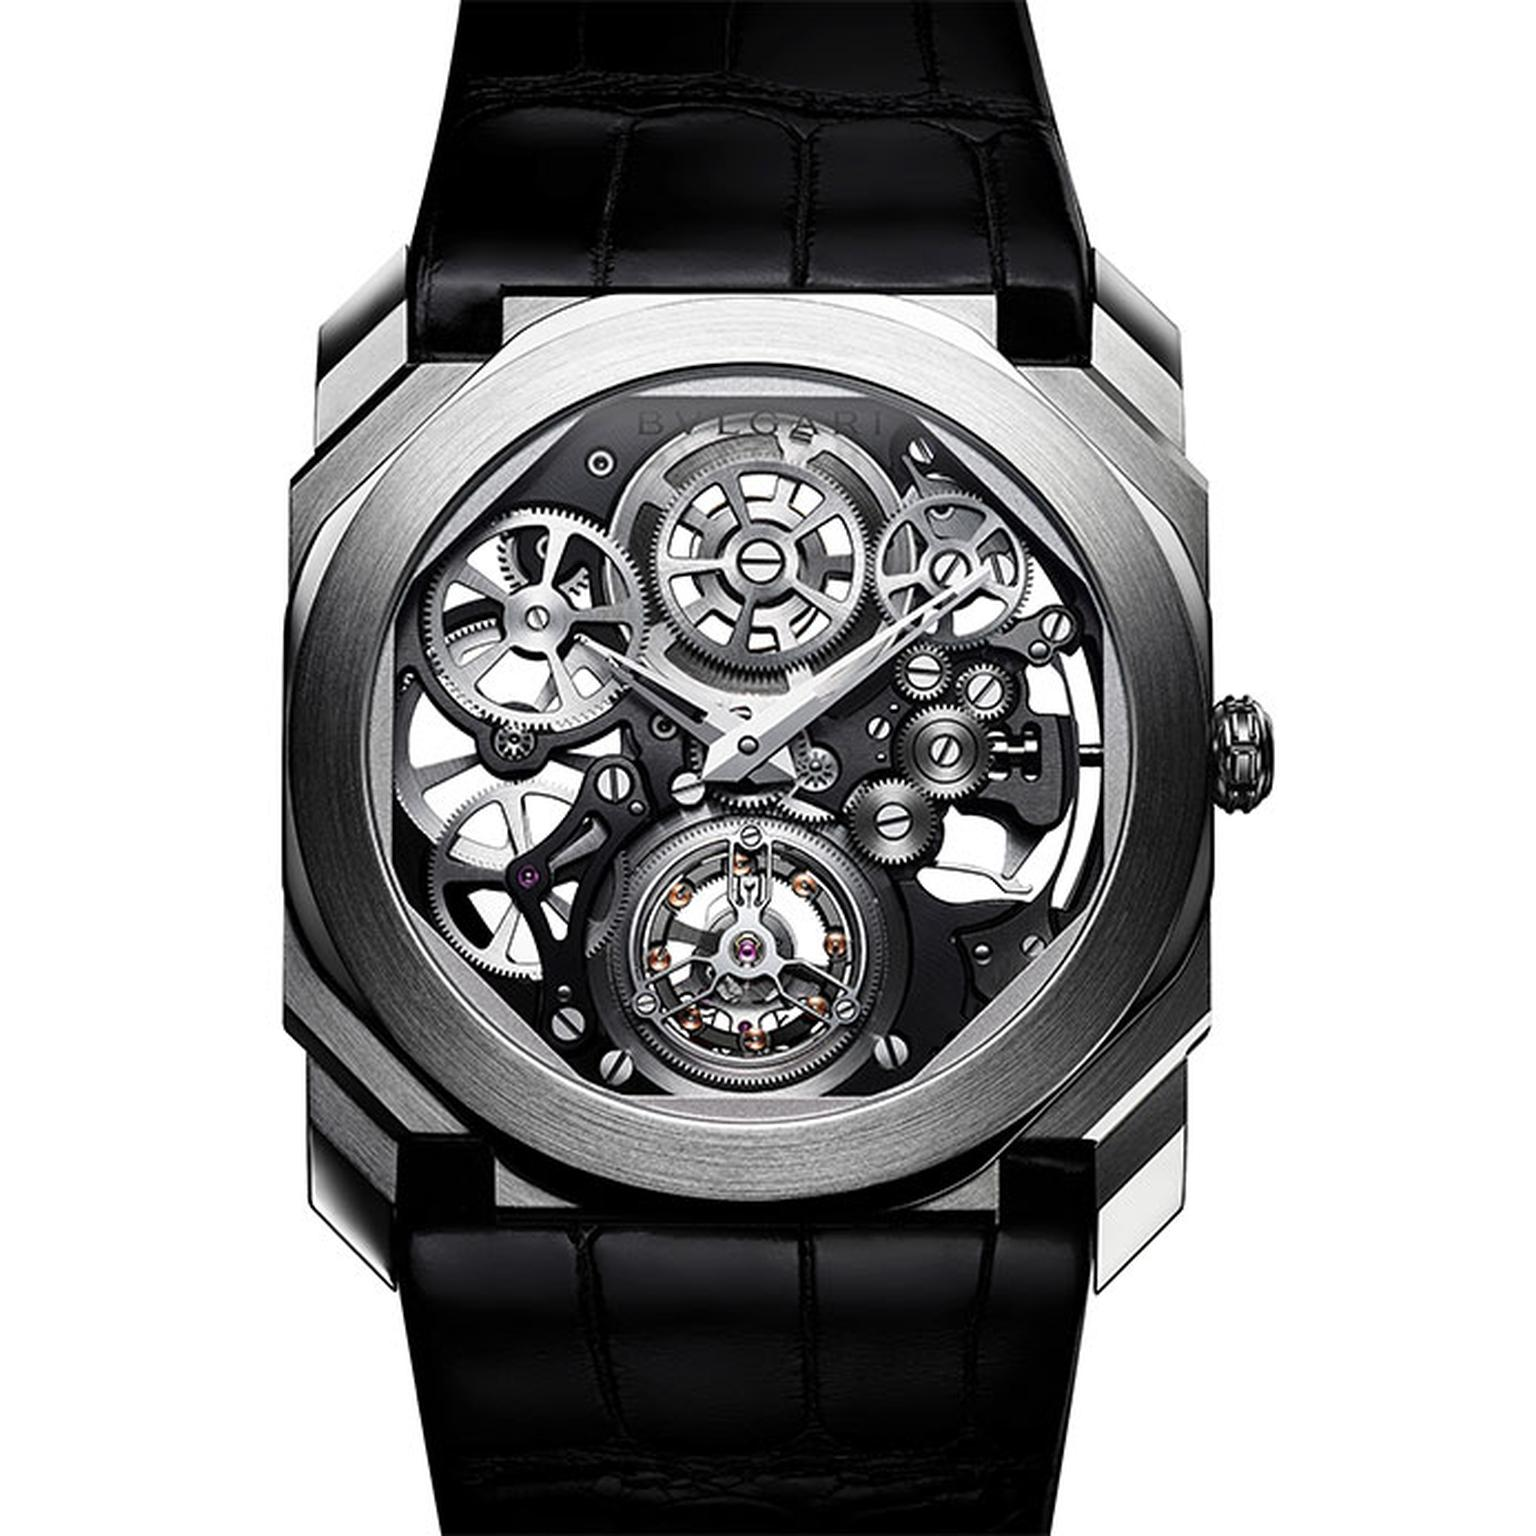 Bulgari Octo Finissimo Tourbillon Skeleton model